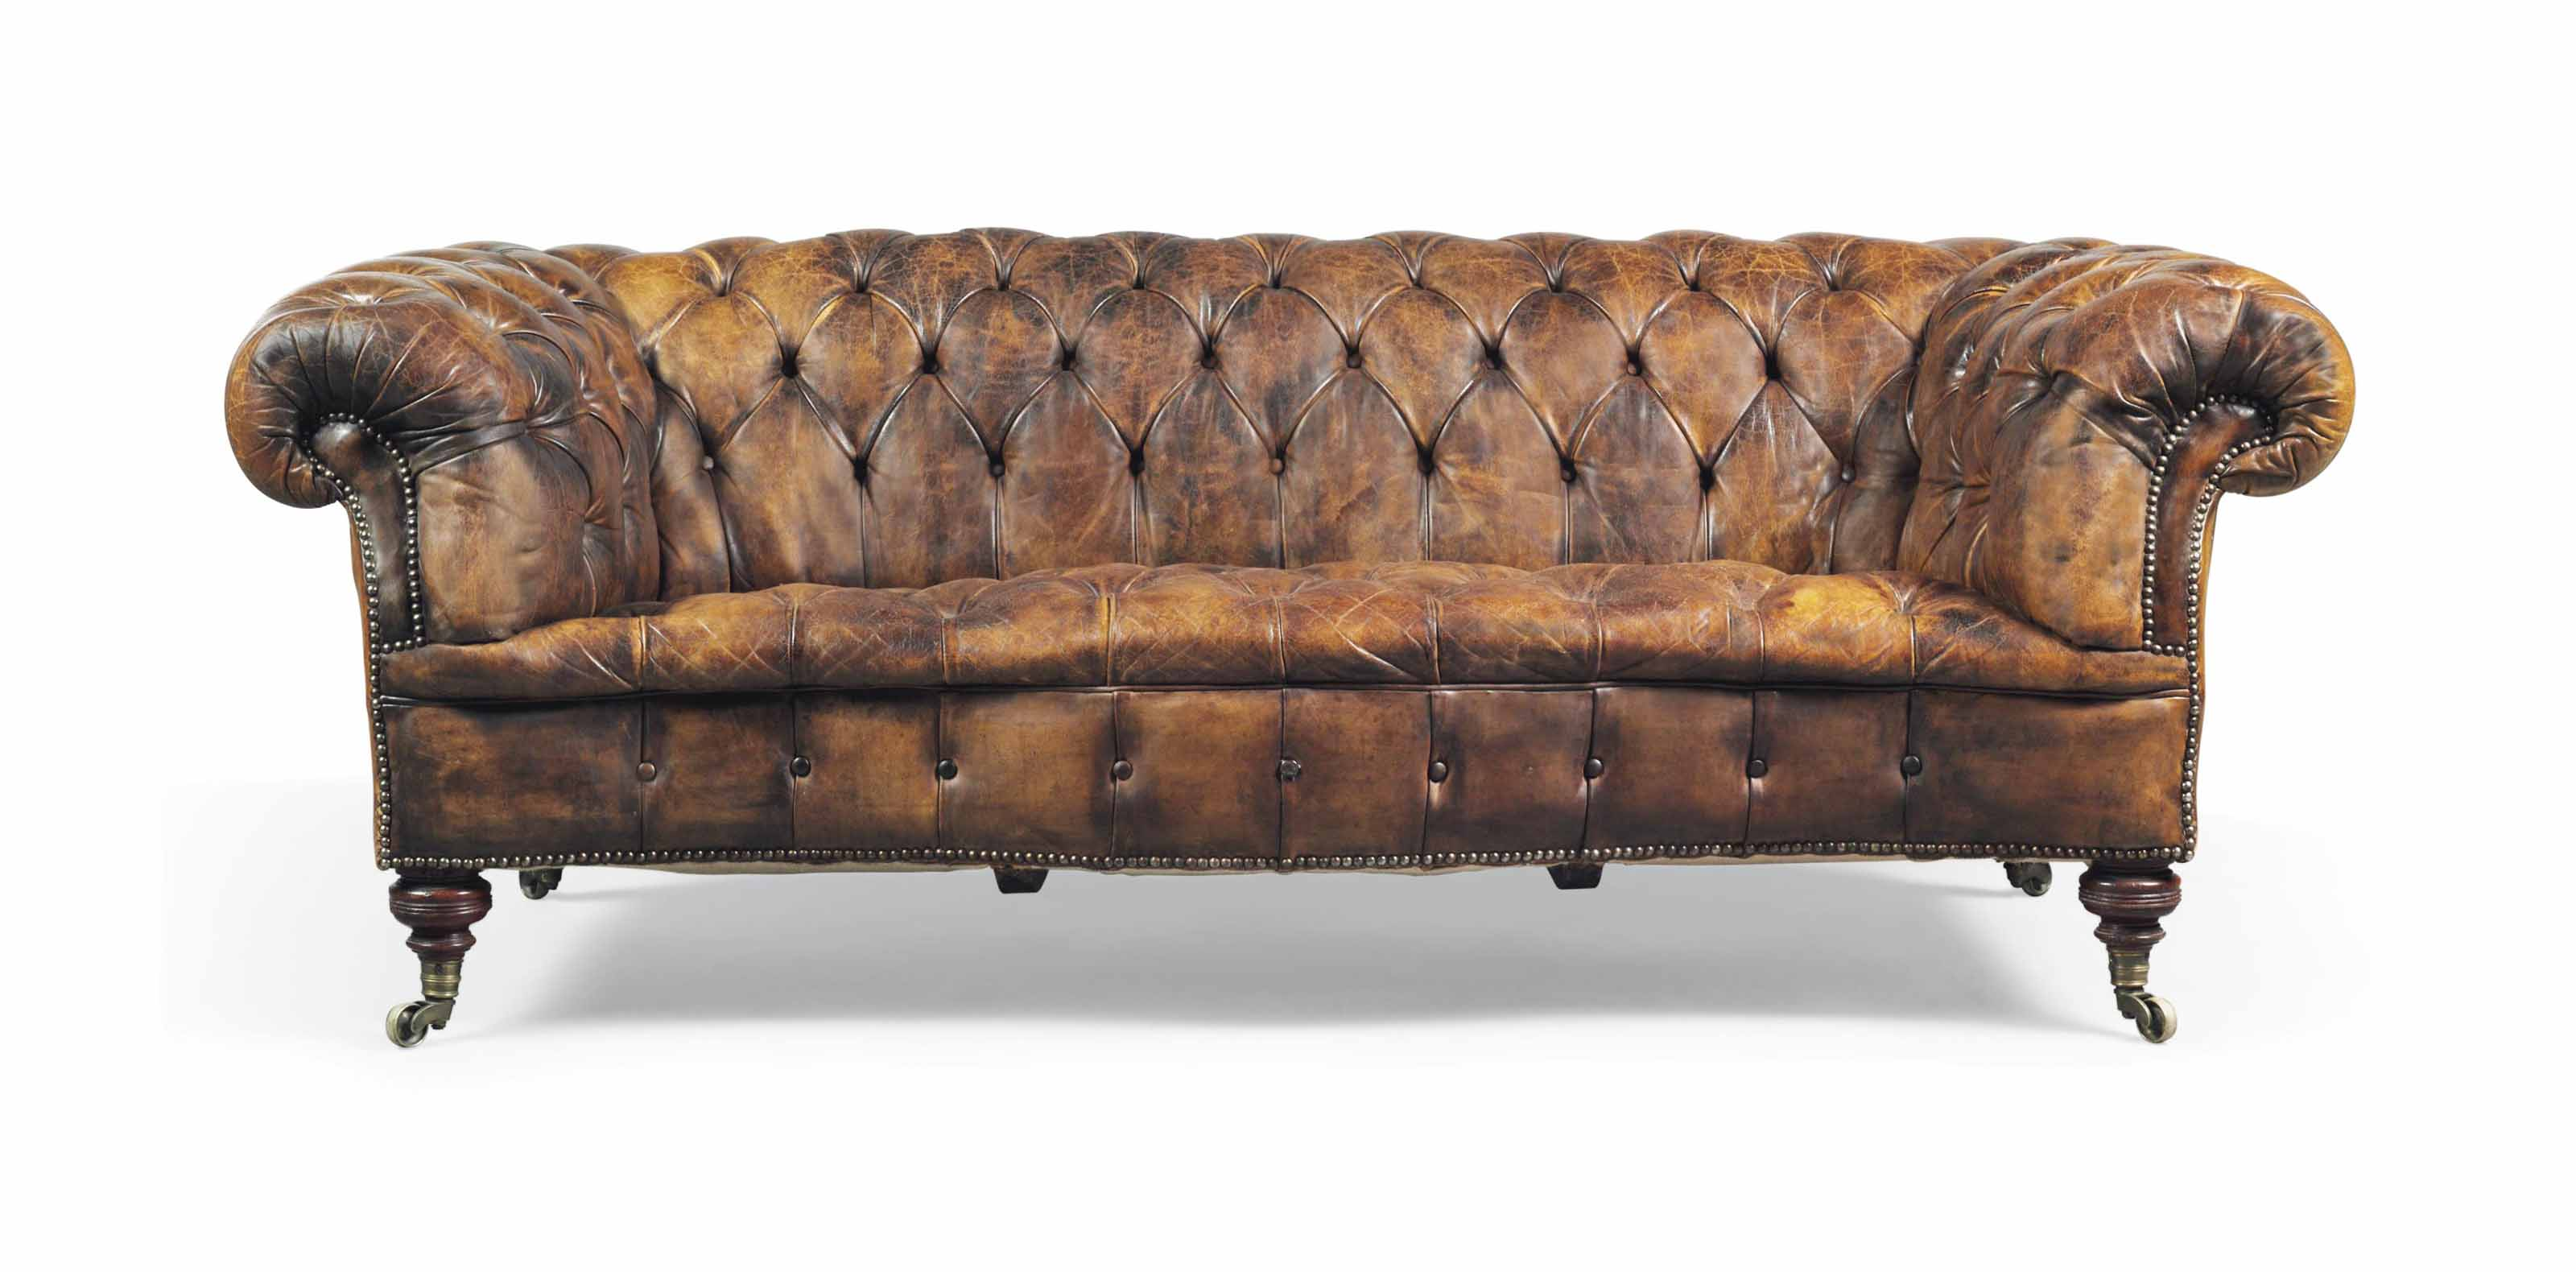 A VICTORIAN WALNUT SERPENTINE CHESTERFIELD SOFA